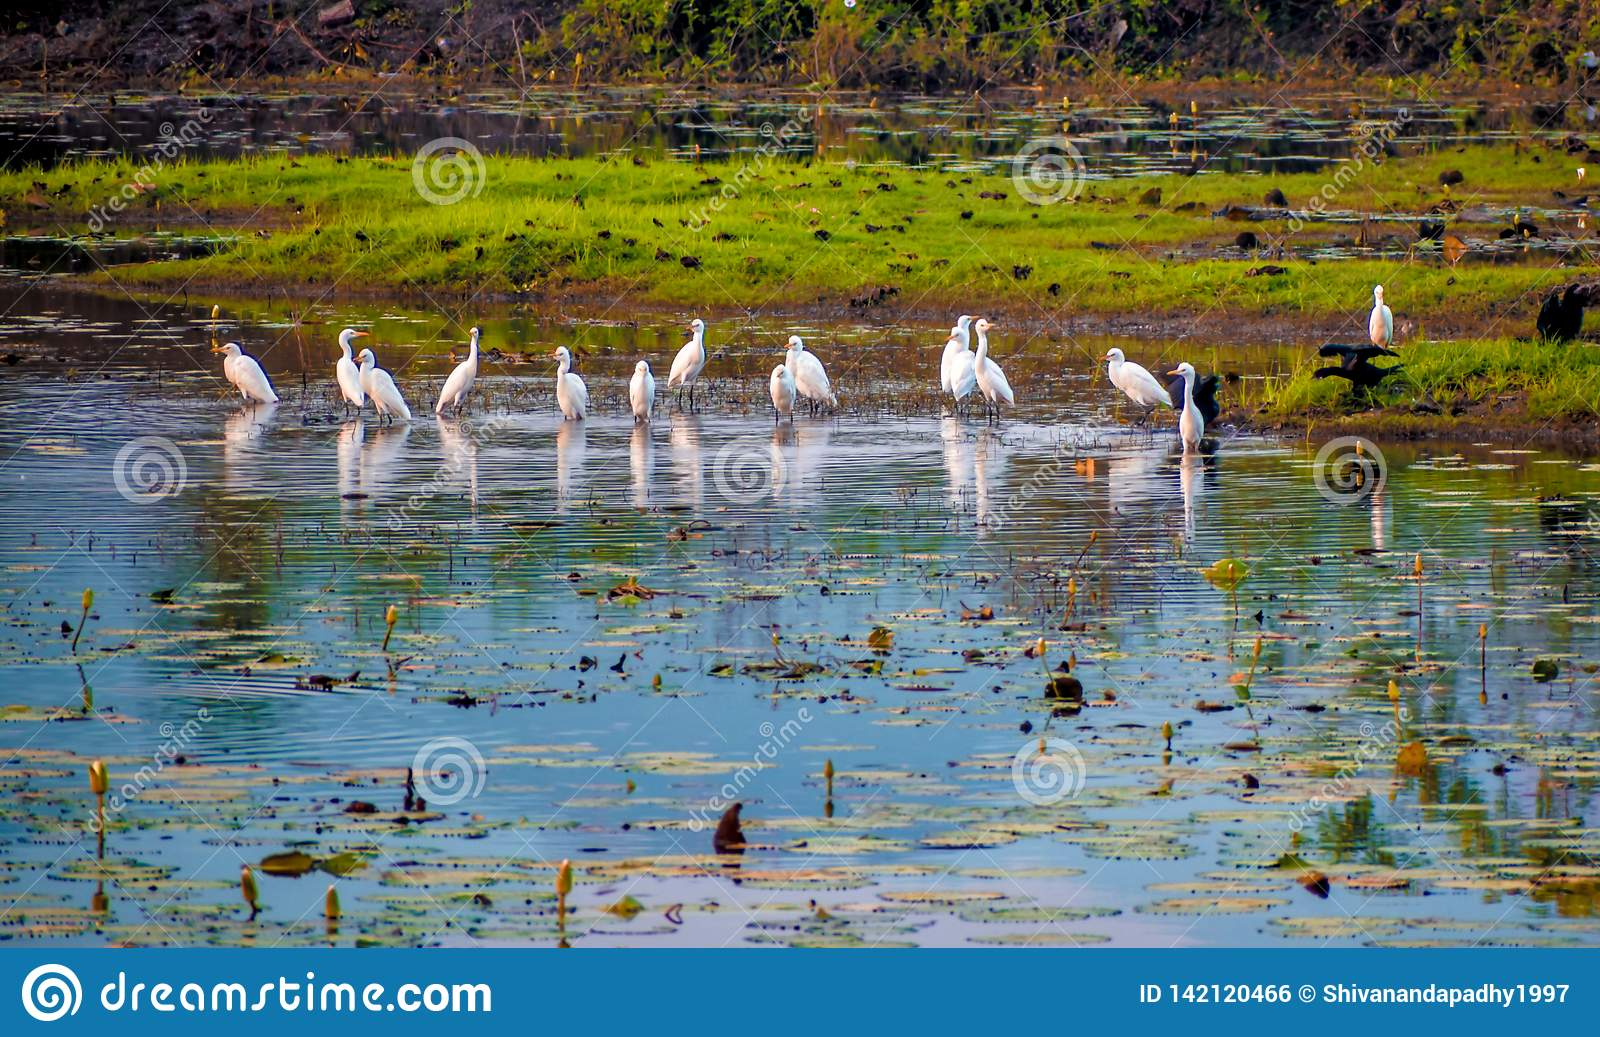 A group of cranes having quality time.